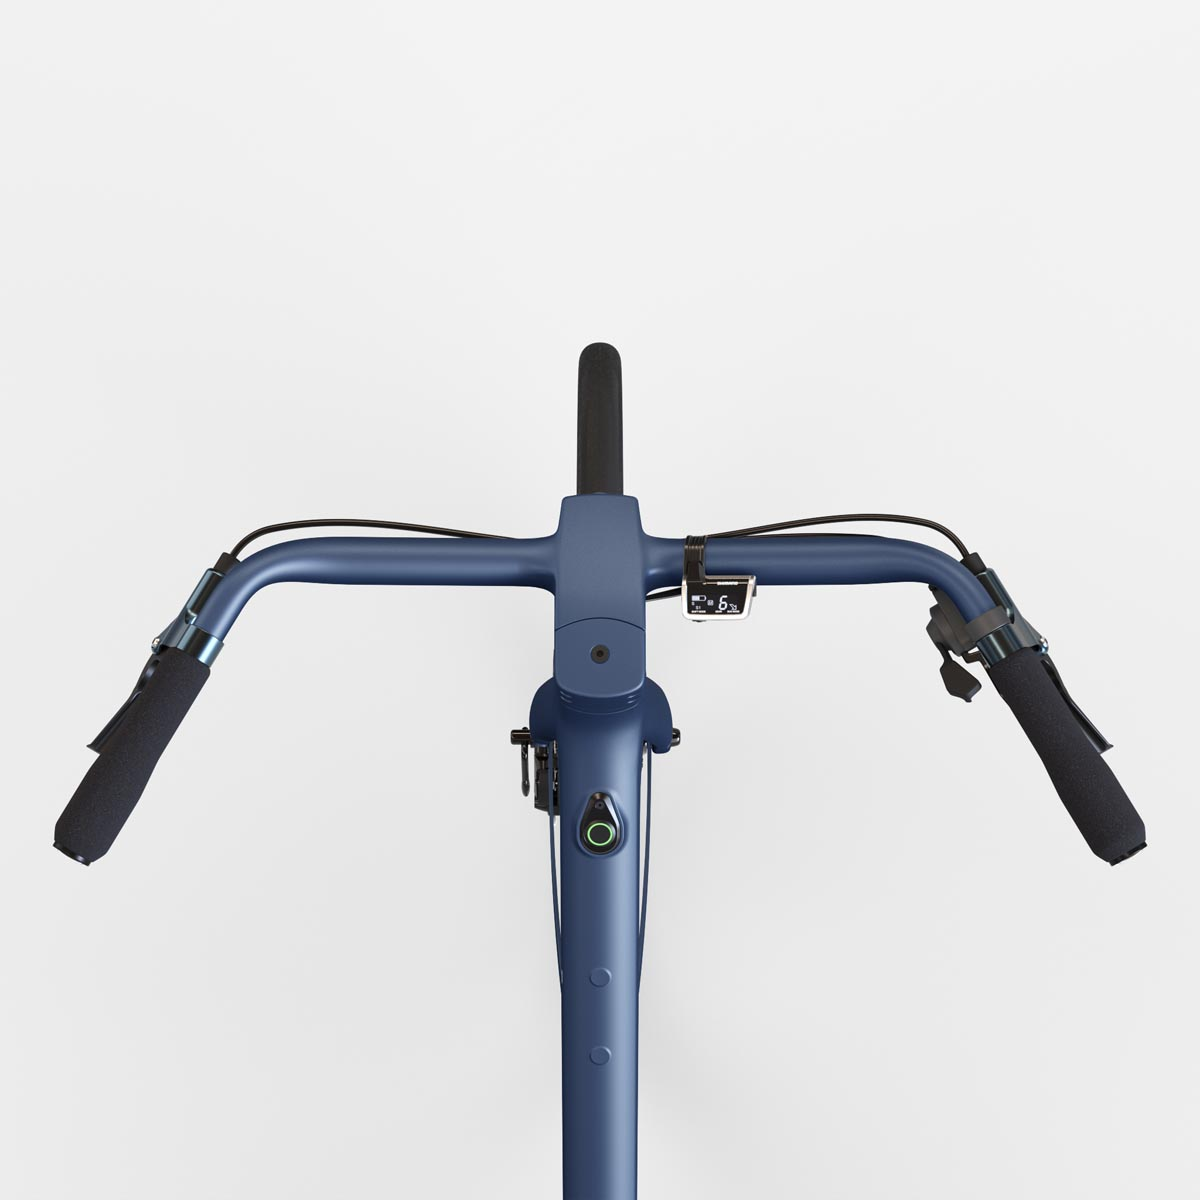 LeMond Dutch handlebars